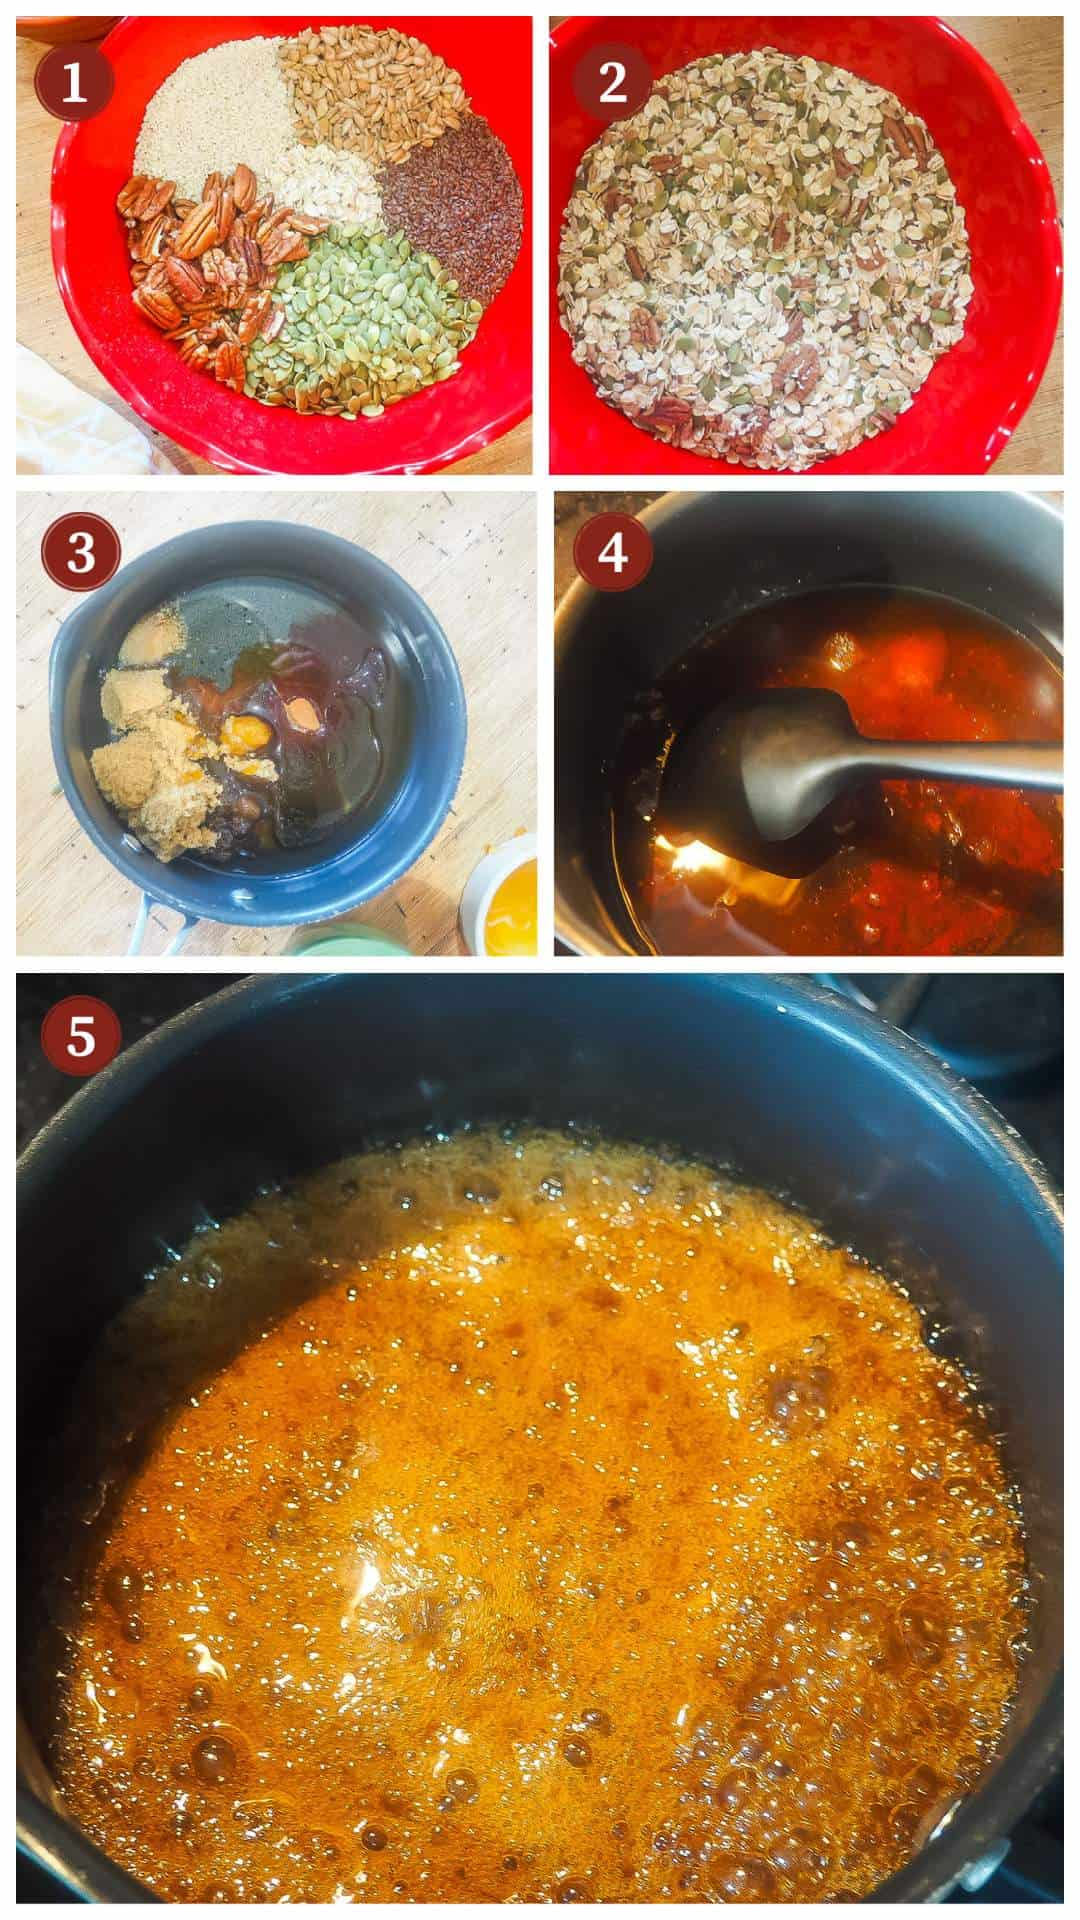 A collage of images showing how to make homemade granola, steps 1 - 5.